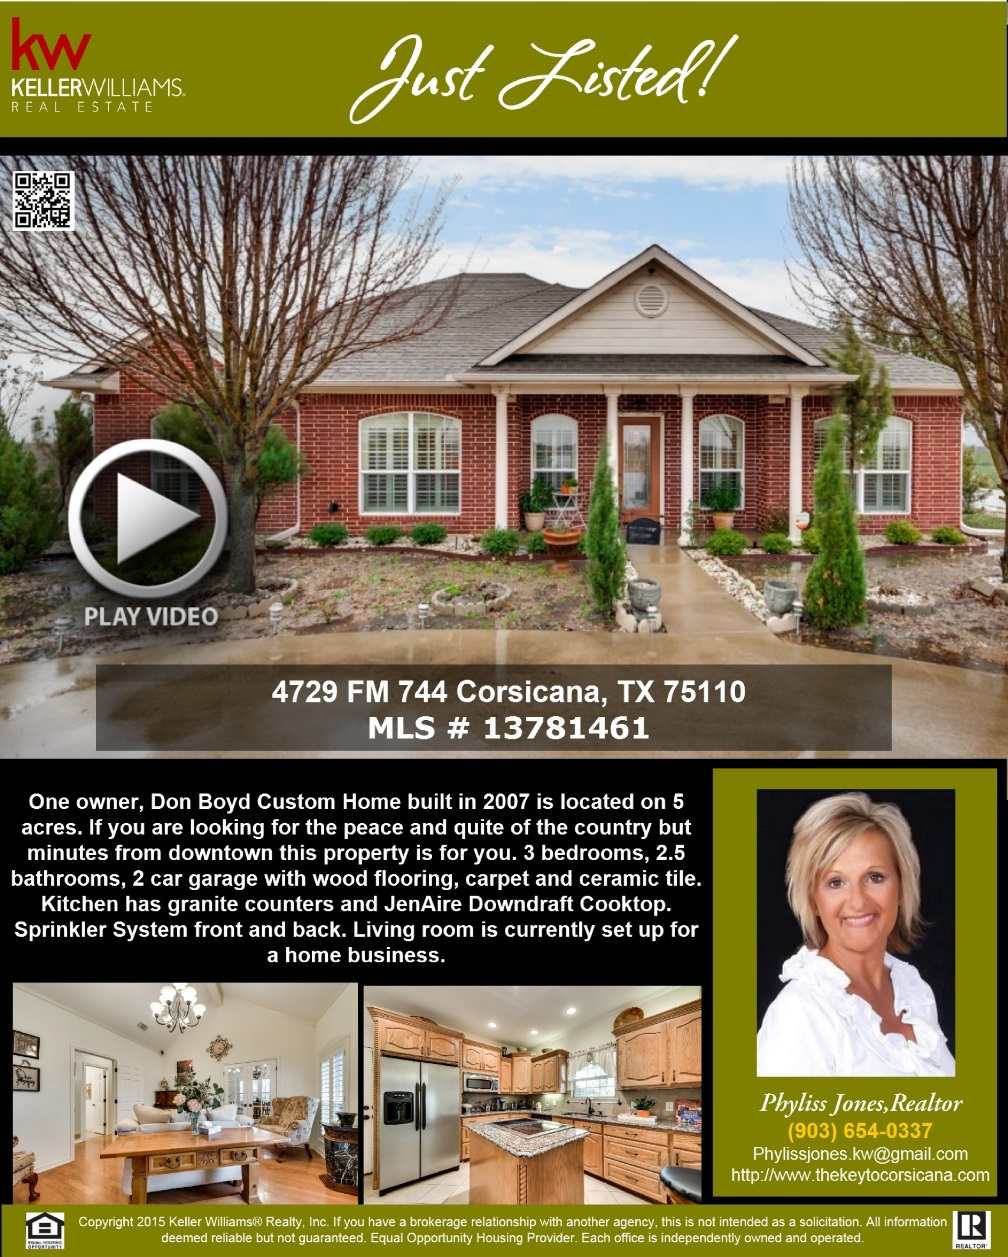 JUST LISTED! :) Please call me to schedule a showing and for more info. Phyliss Jones, Realtor (903) 654-0337.  #Newlisting #Corsicanahomeforsale #KW #Kellerwilliamsarlington #Bestdeal #Greatlocation #Realestate #Homeforsale